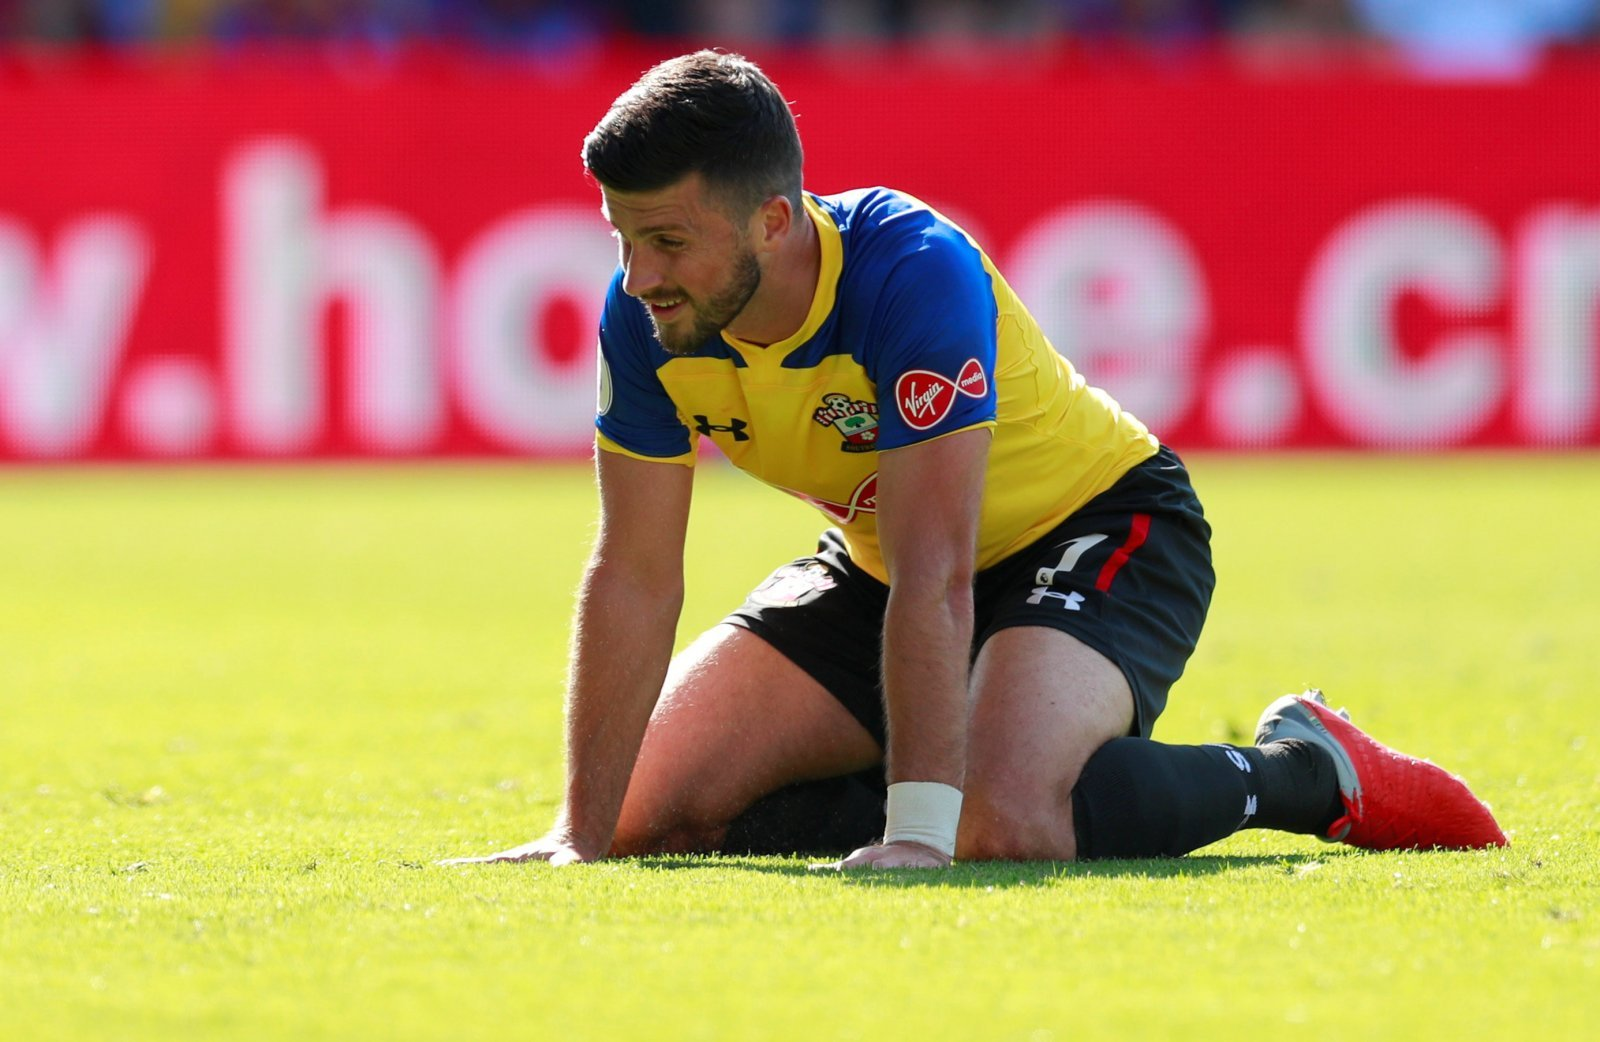 Shane Long should be available when Premier League resumes